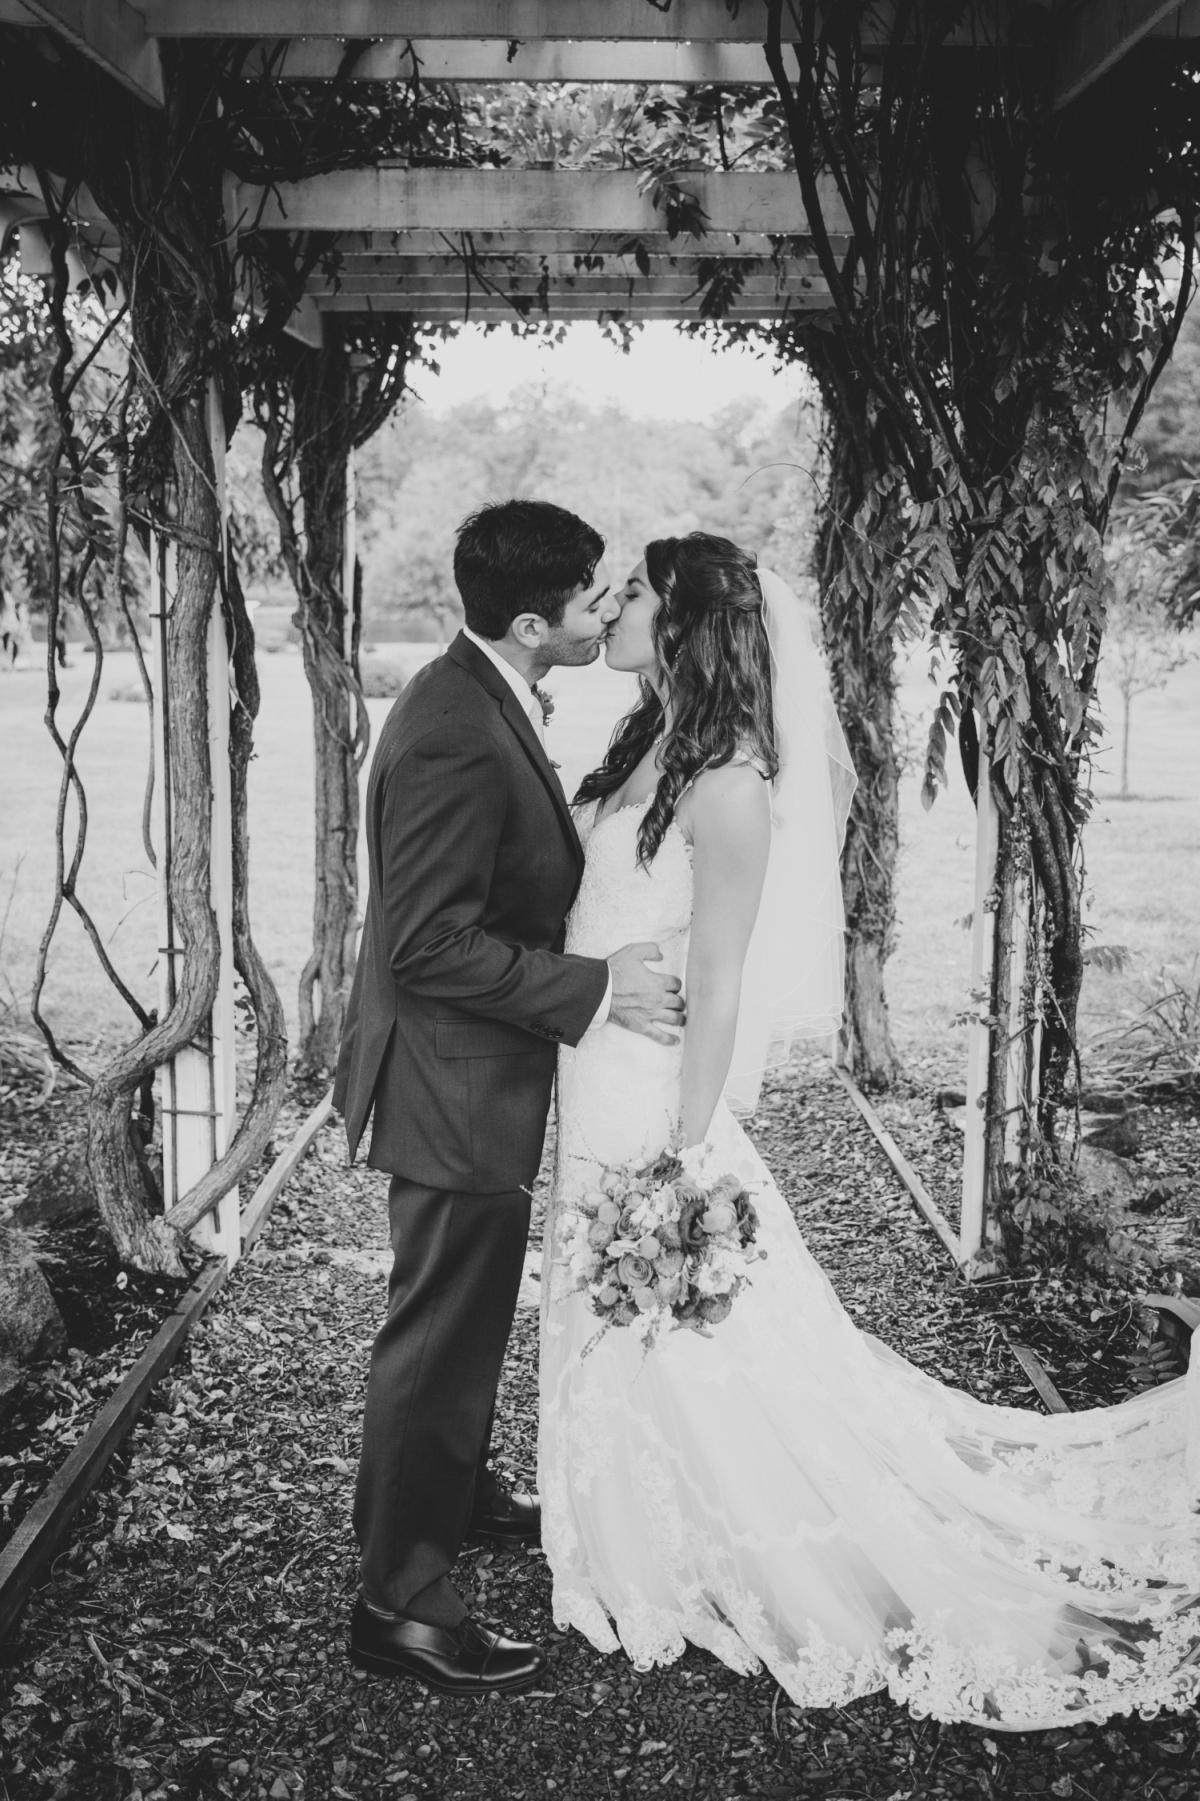 Rustic Elegant Wedding at the Brandywine Manor House Philter Photography Philadelphia Photographer Philly In Love Philadelphia Wedding